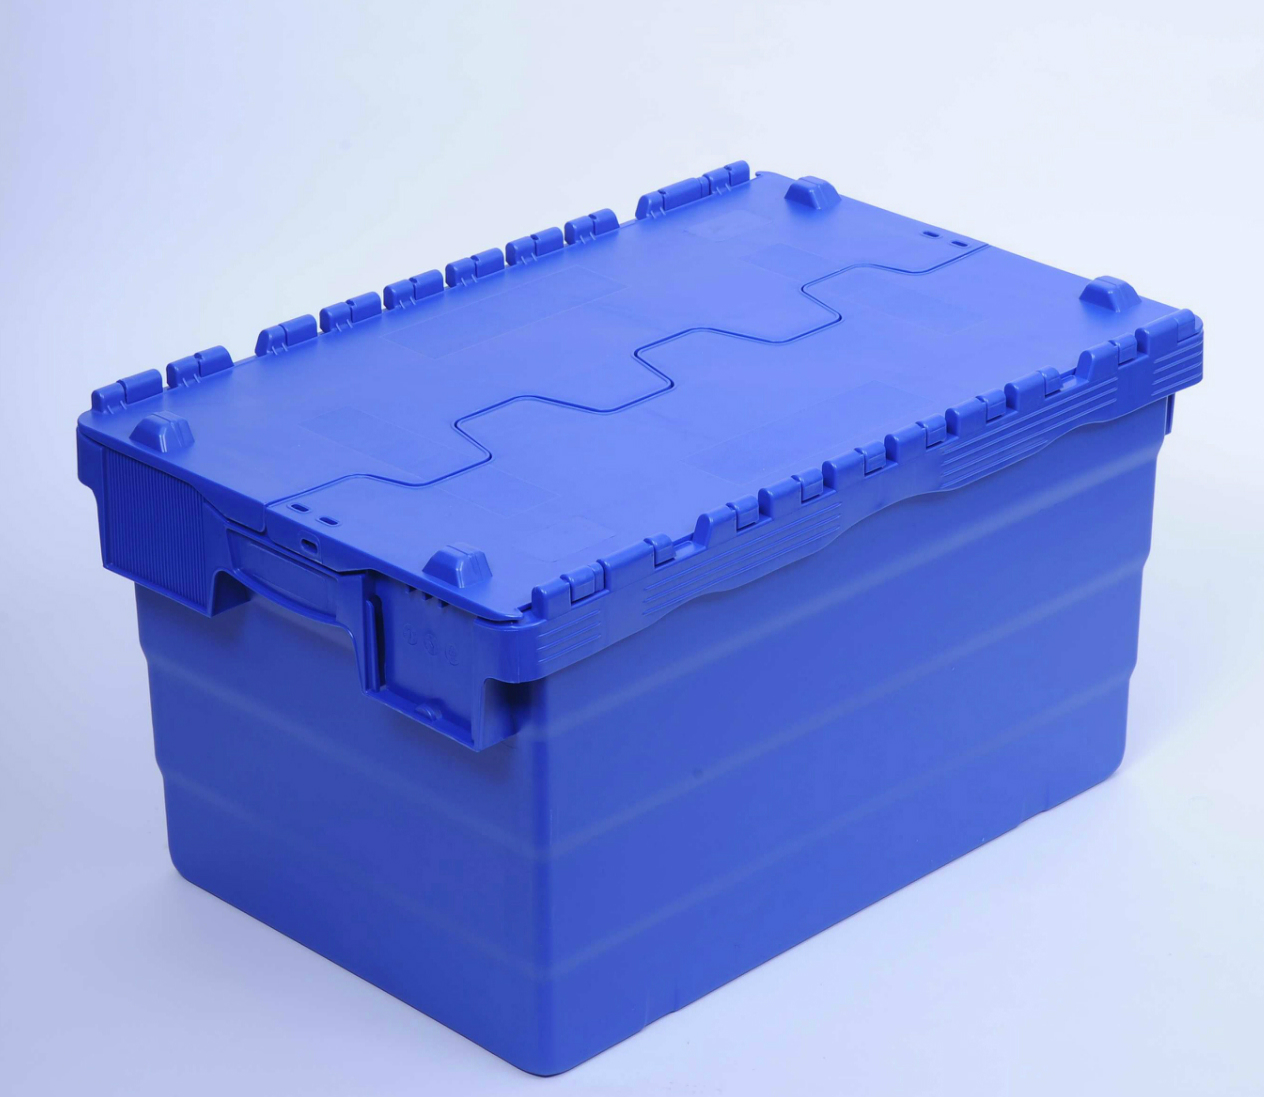 LOGX HOREN SECURITY CRATE 63L BLUE (1287)